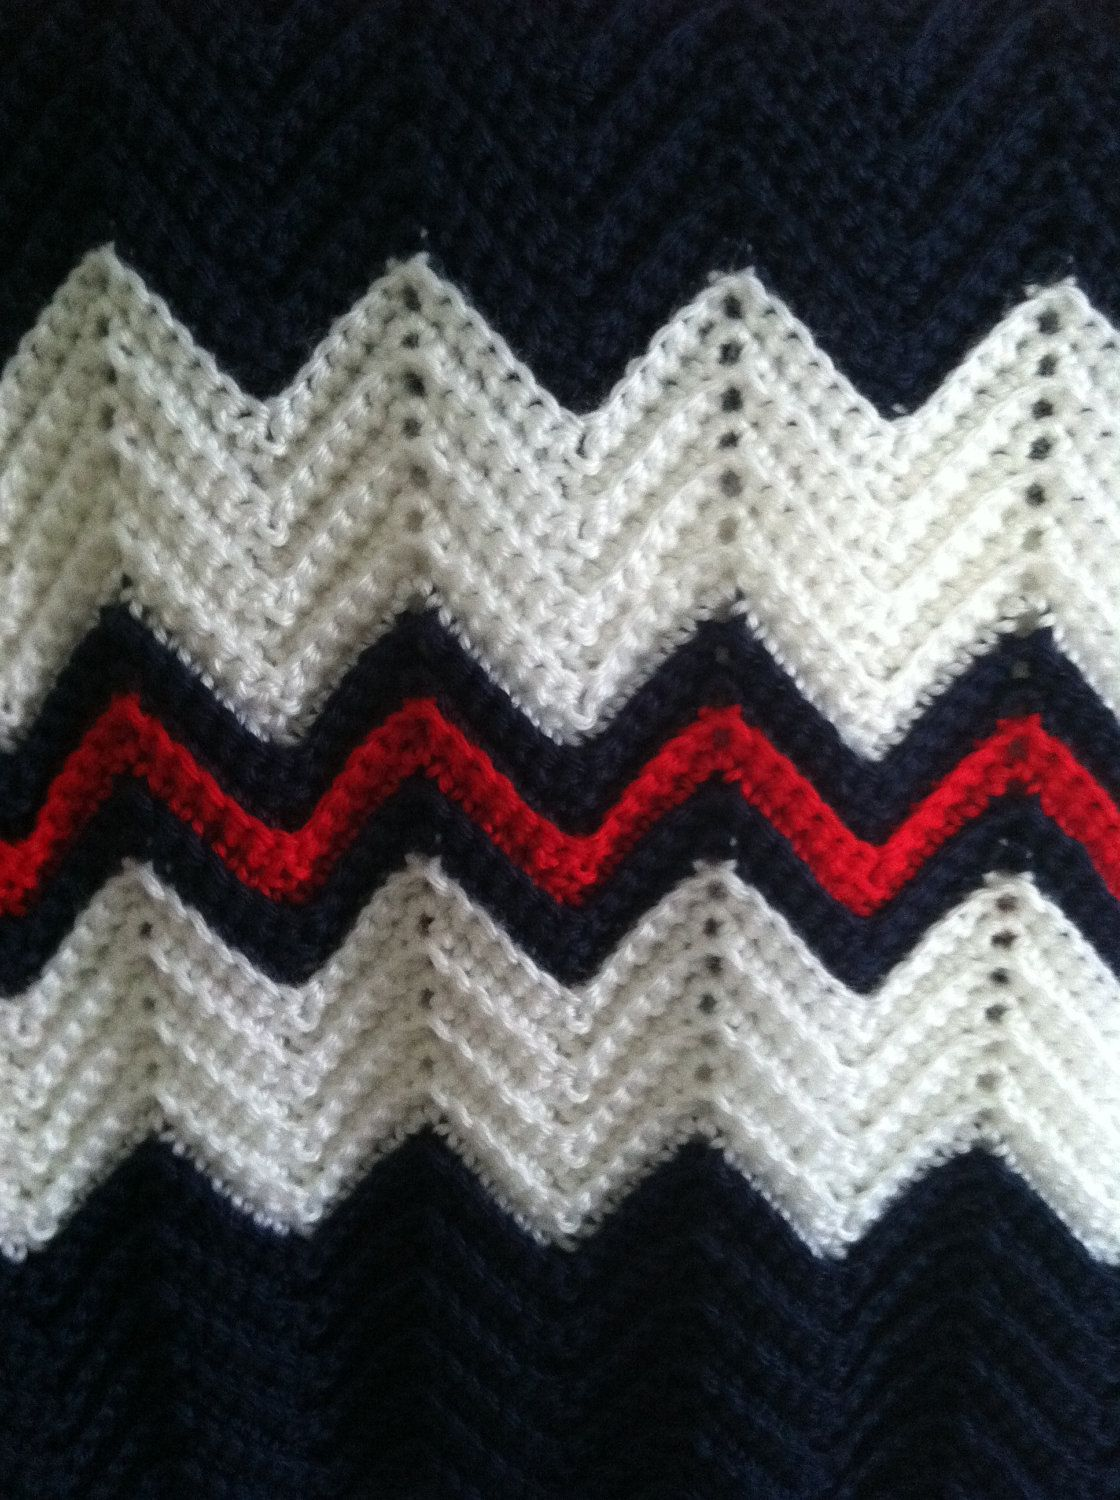 Crochet Ripple Afghan In Navy Blue White And Red 60 00